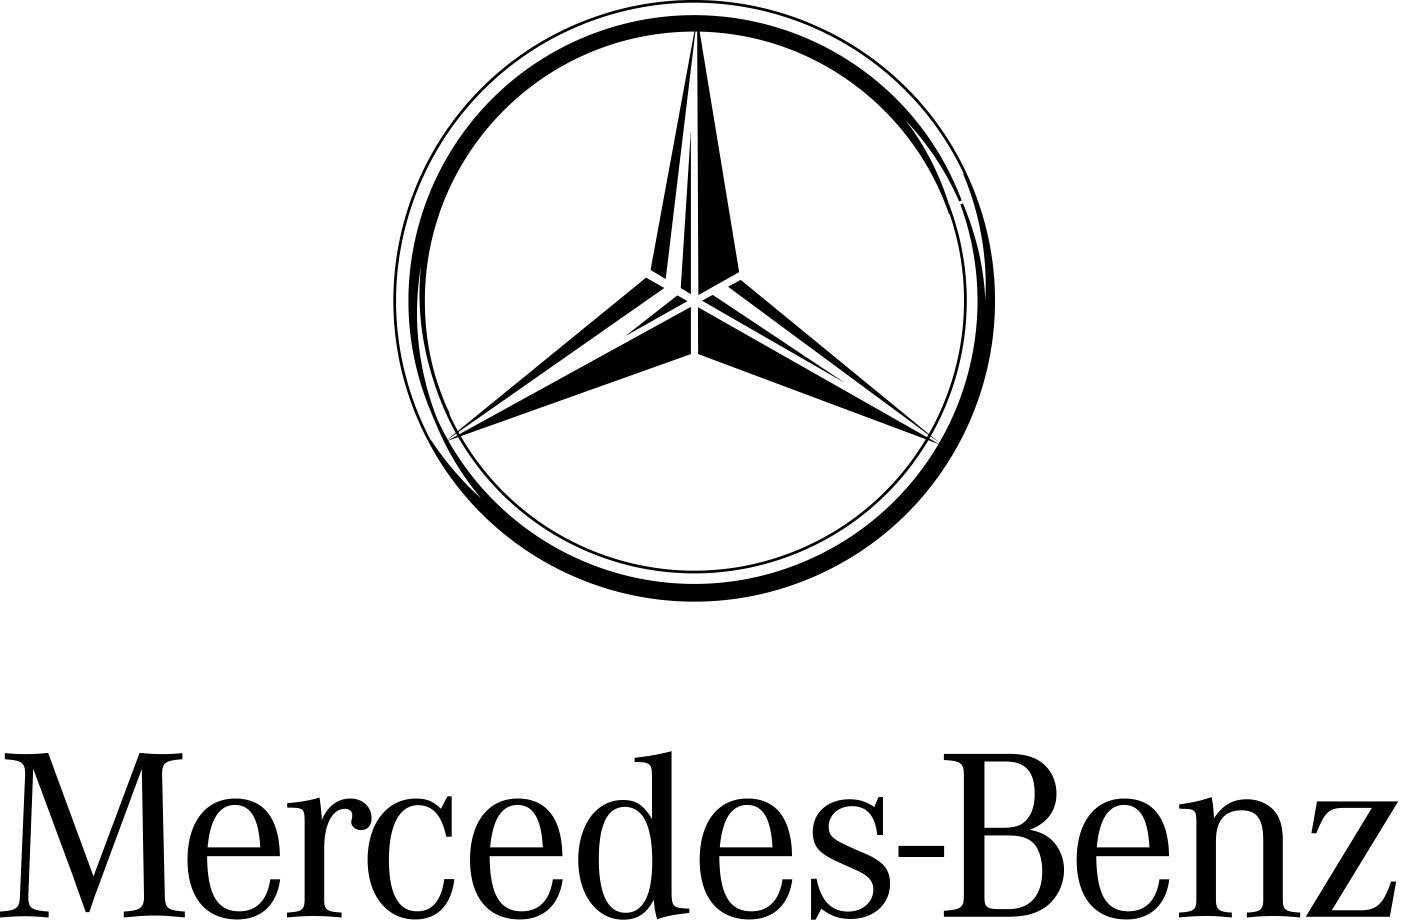 Mercedesman99 1990 Mercedes-Benz 300E 13617943